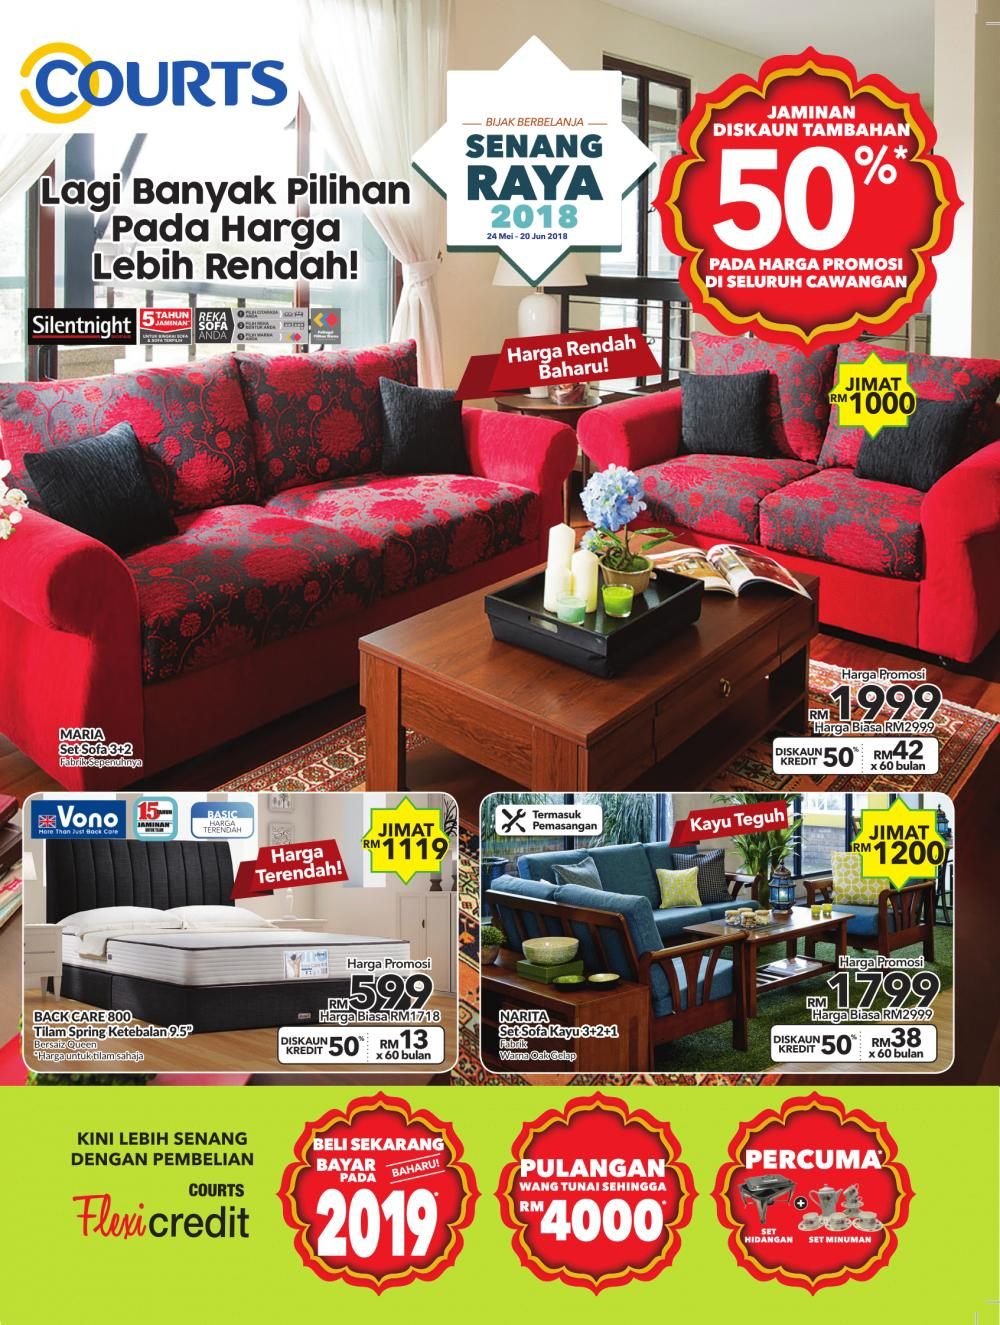 courts sofa lazy boy beds june raya furniture promotion catalogue 24 may 2018 20